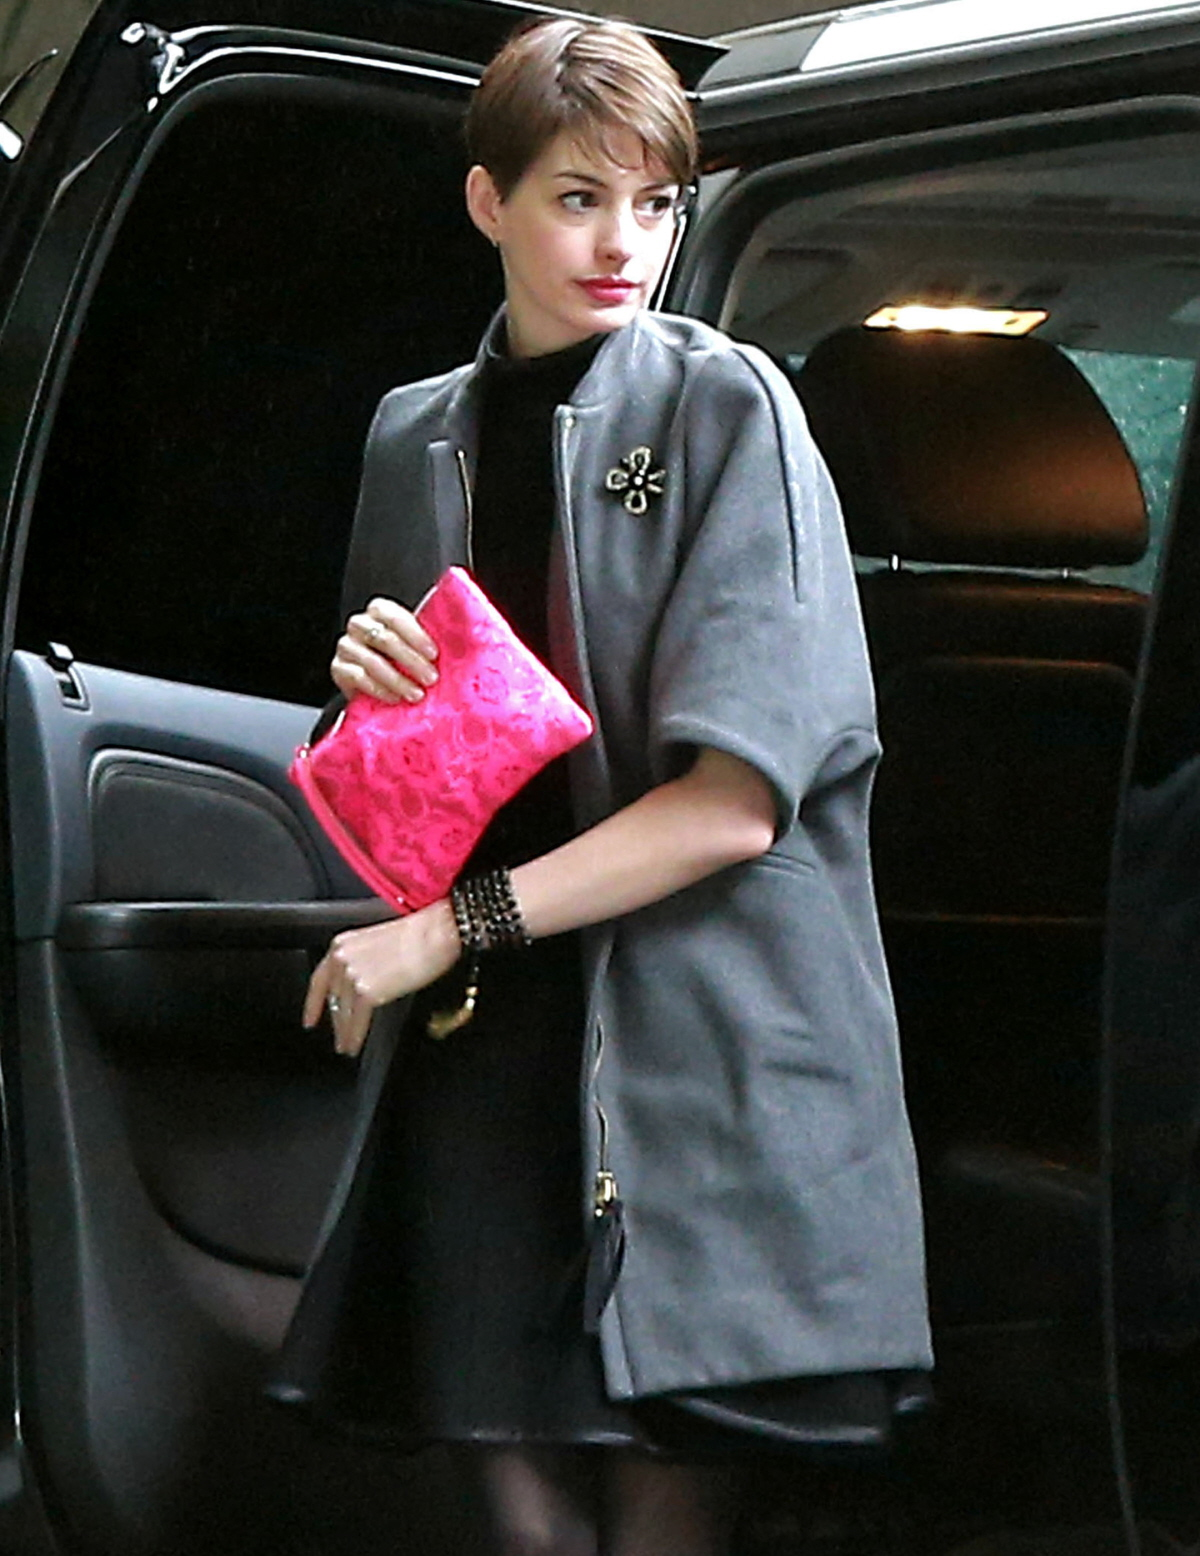 Non nude vagina legal pics Spears